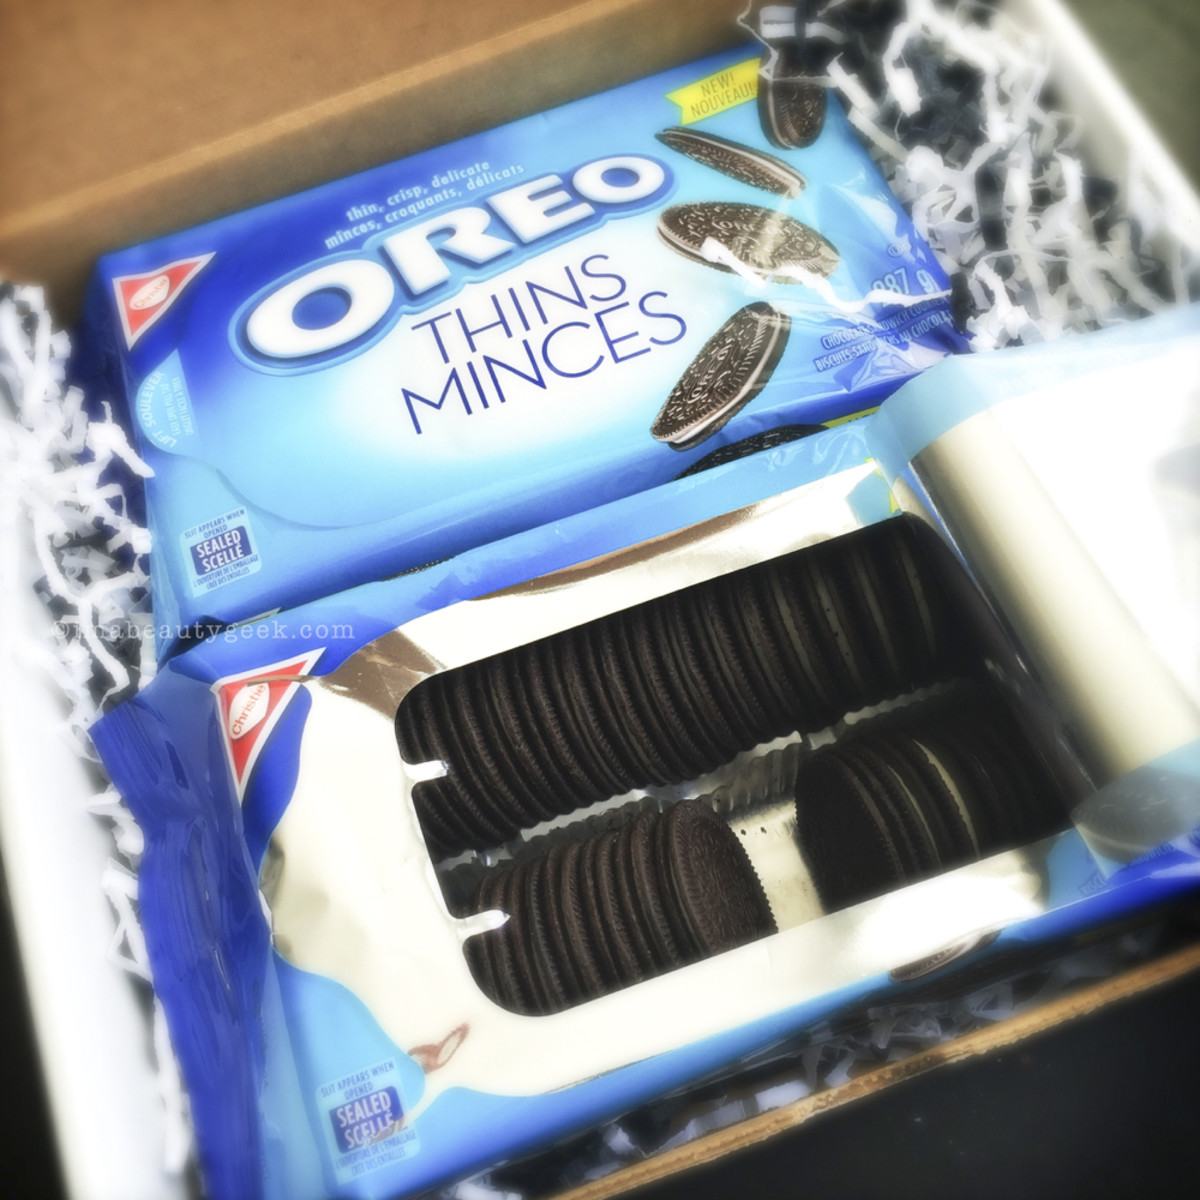 New Oreo thins boxed